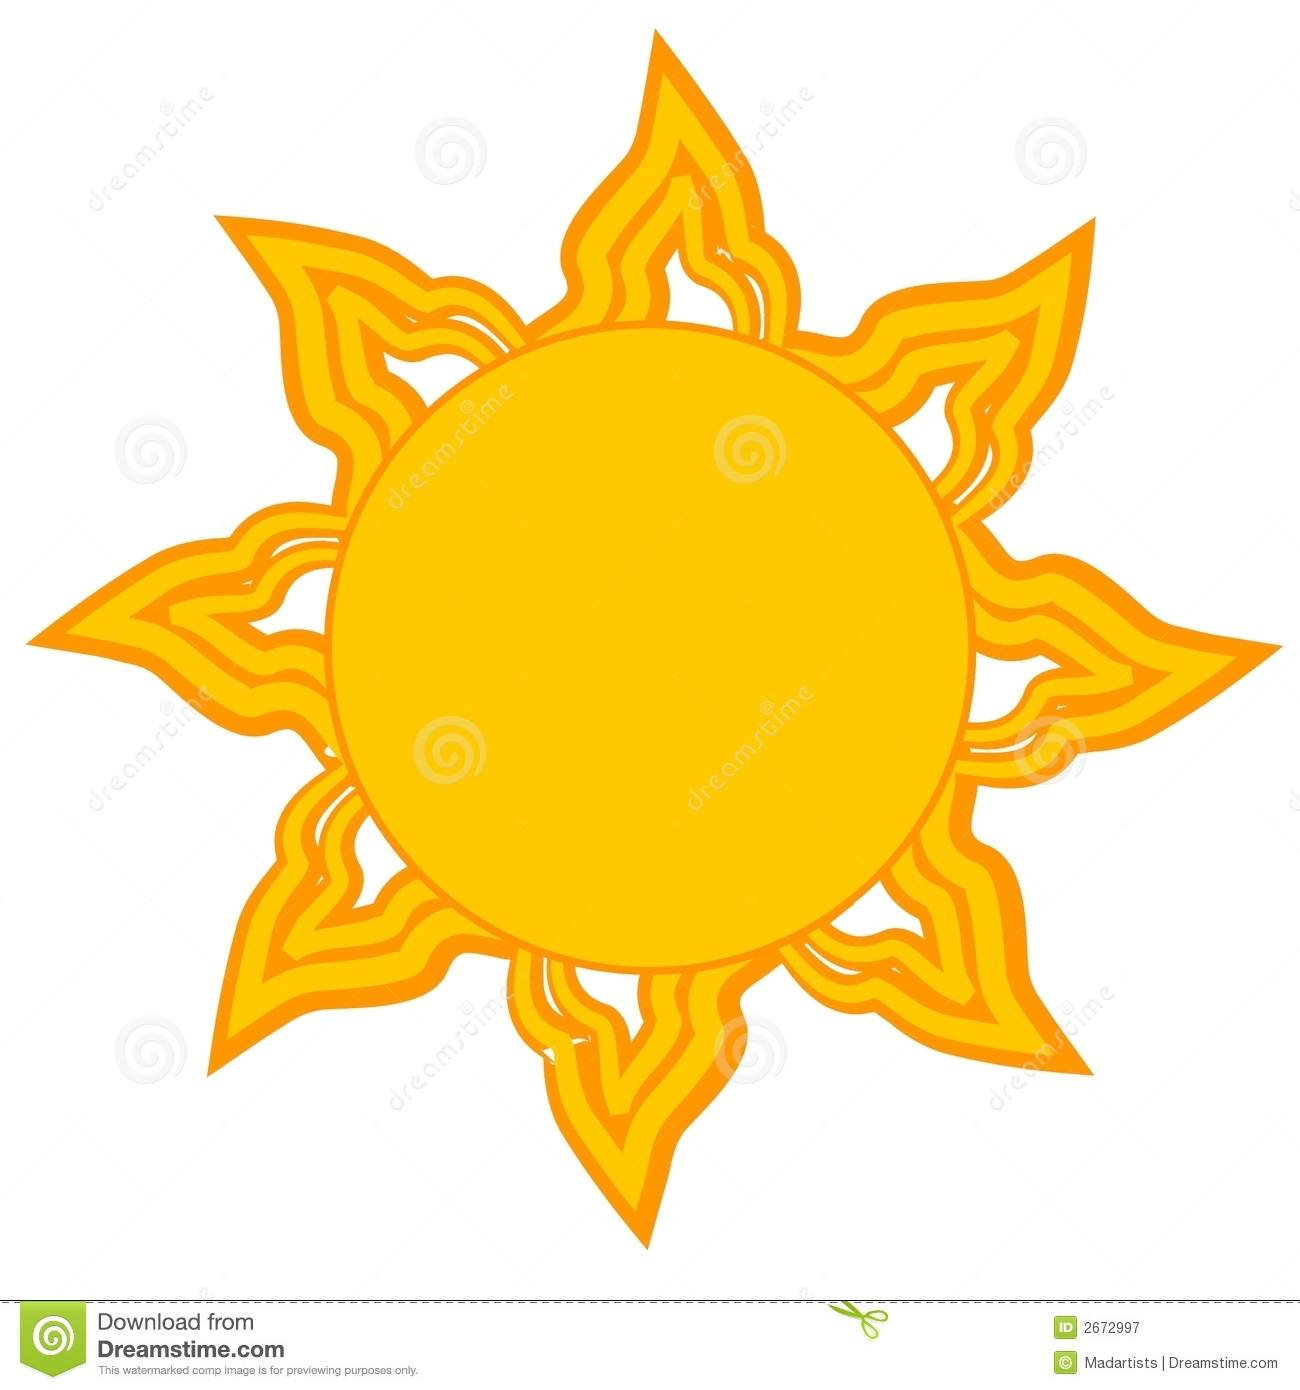 Bright Yellow Sun Clip Art Royalty Free Stock Photos.